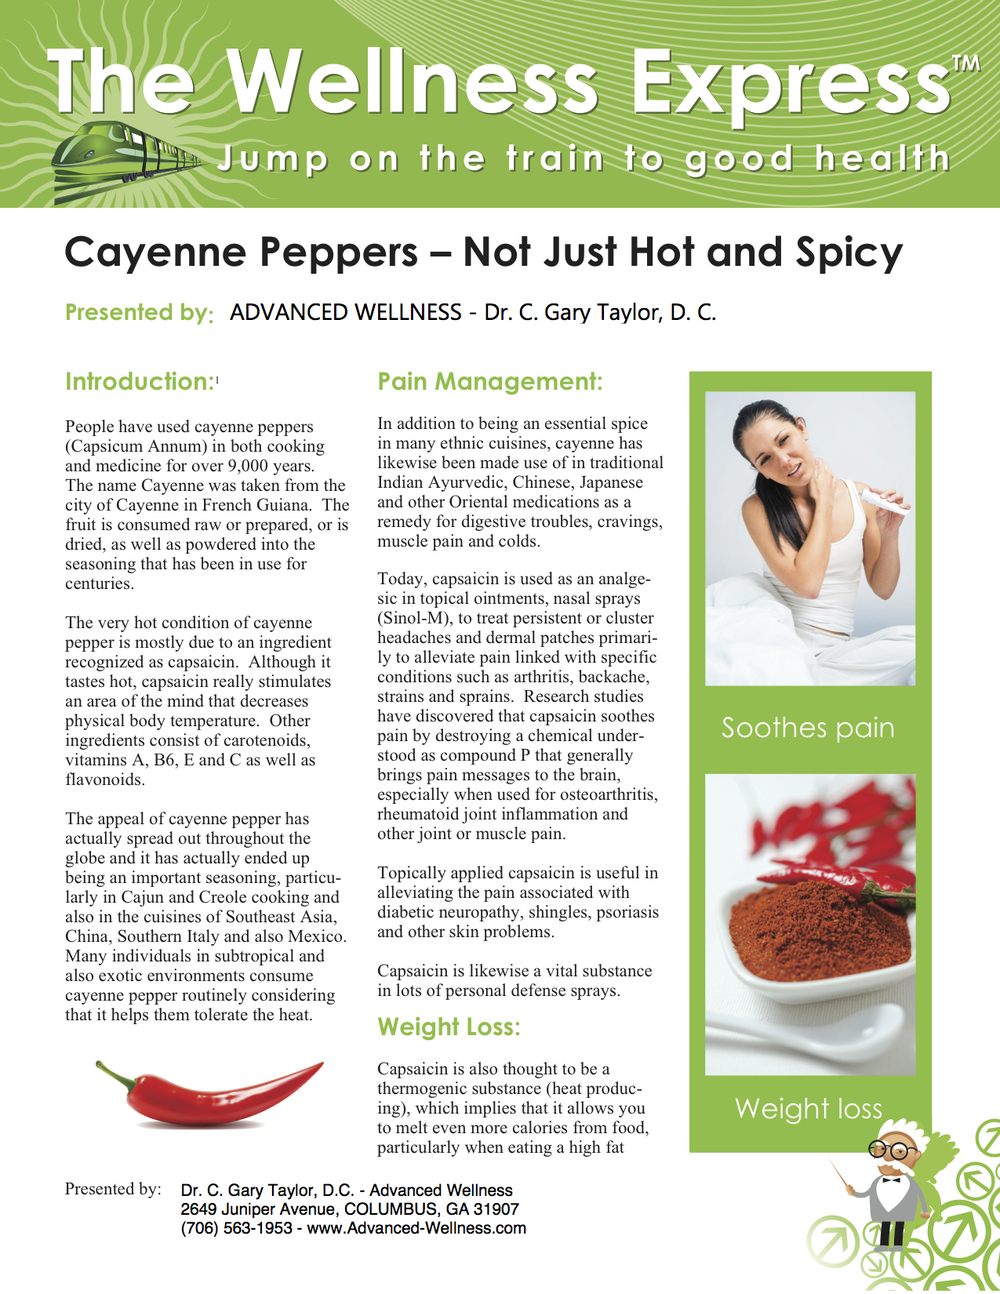 Weekly Newsletter: Cayenne Peppers: Not Just Hot and Spicy